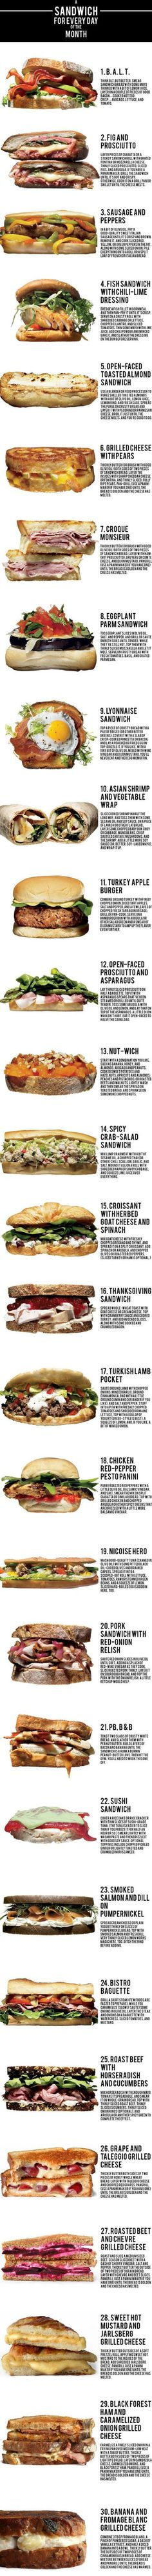 Sandwich for every day of the month